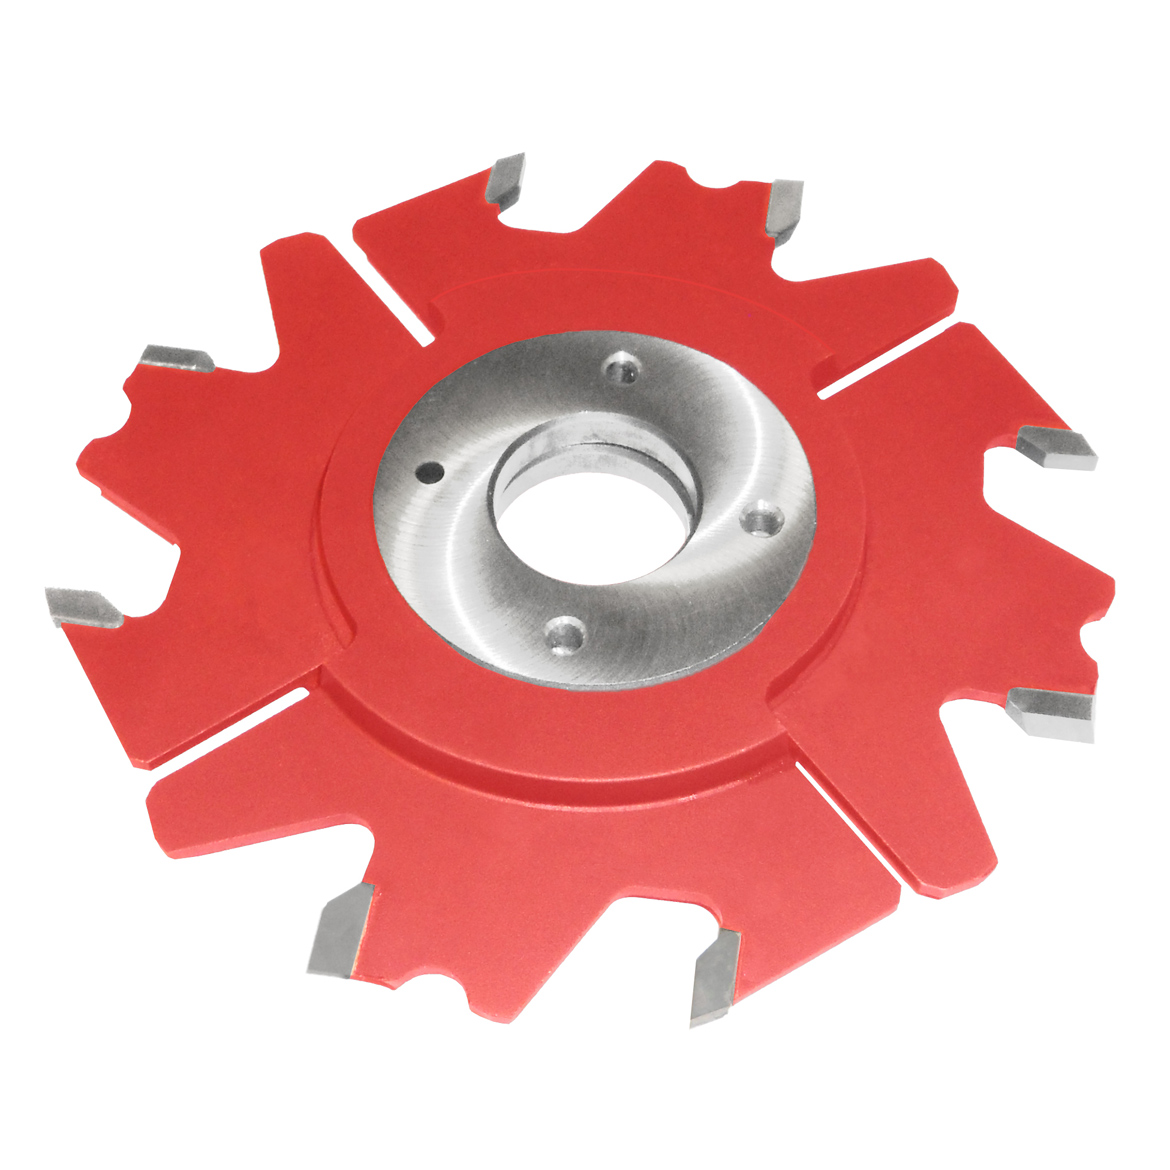 Adjustable grooving cutters with thickness by means of space-washers